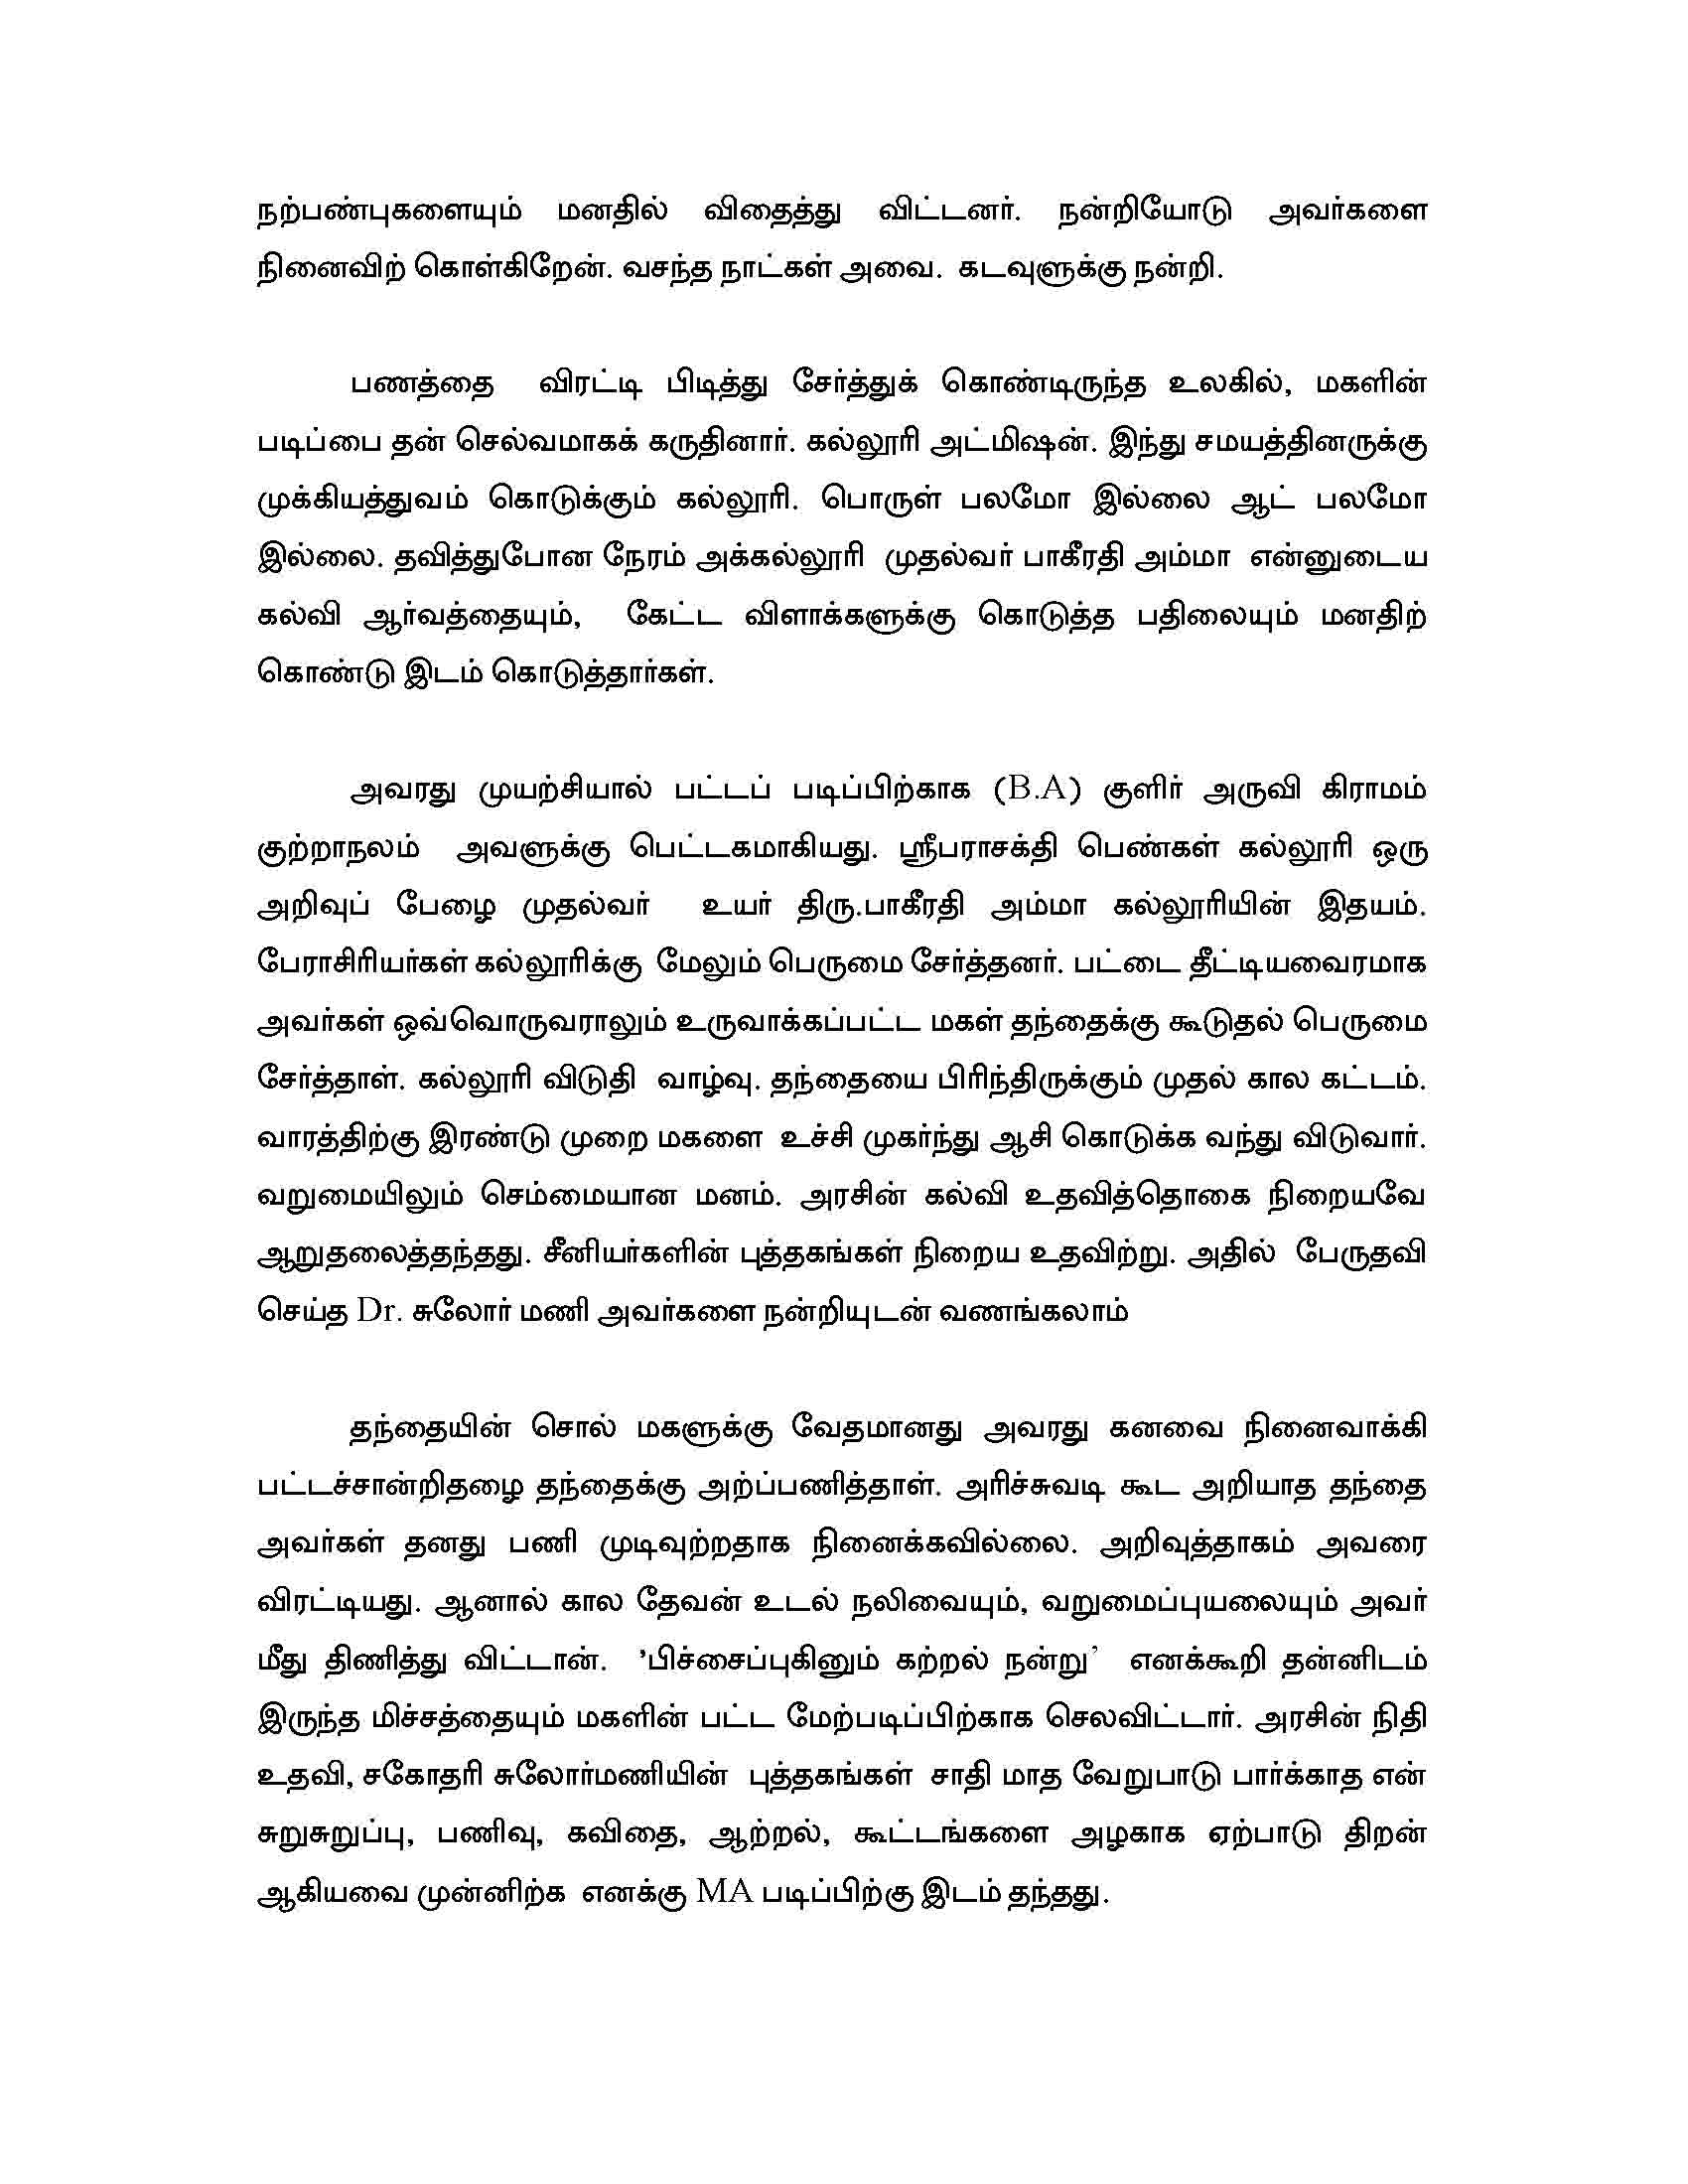 008 Tamil 1 Page 2 Essay About Family Shocking History Influence On Values First And Foremost Full